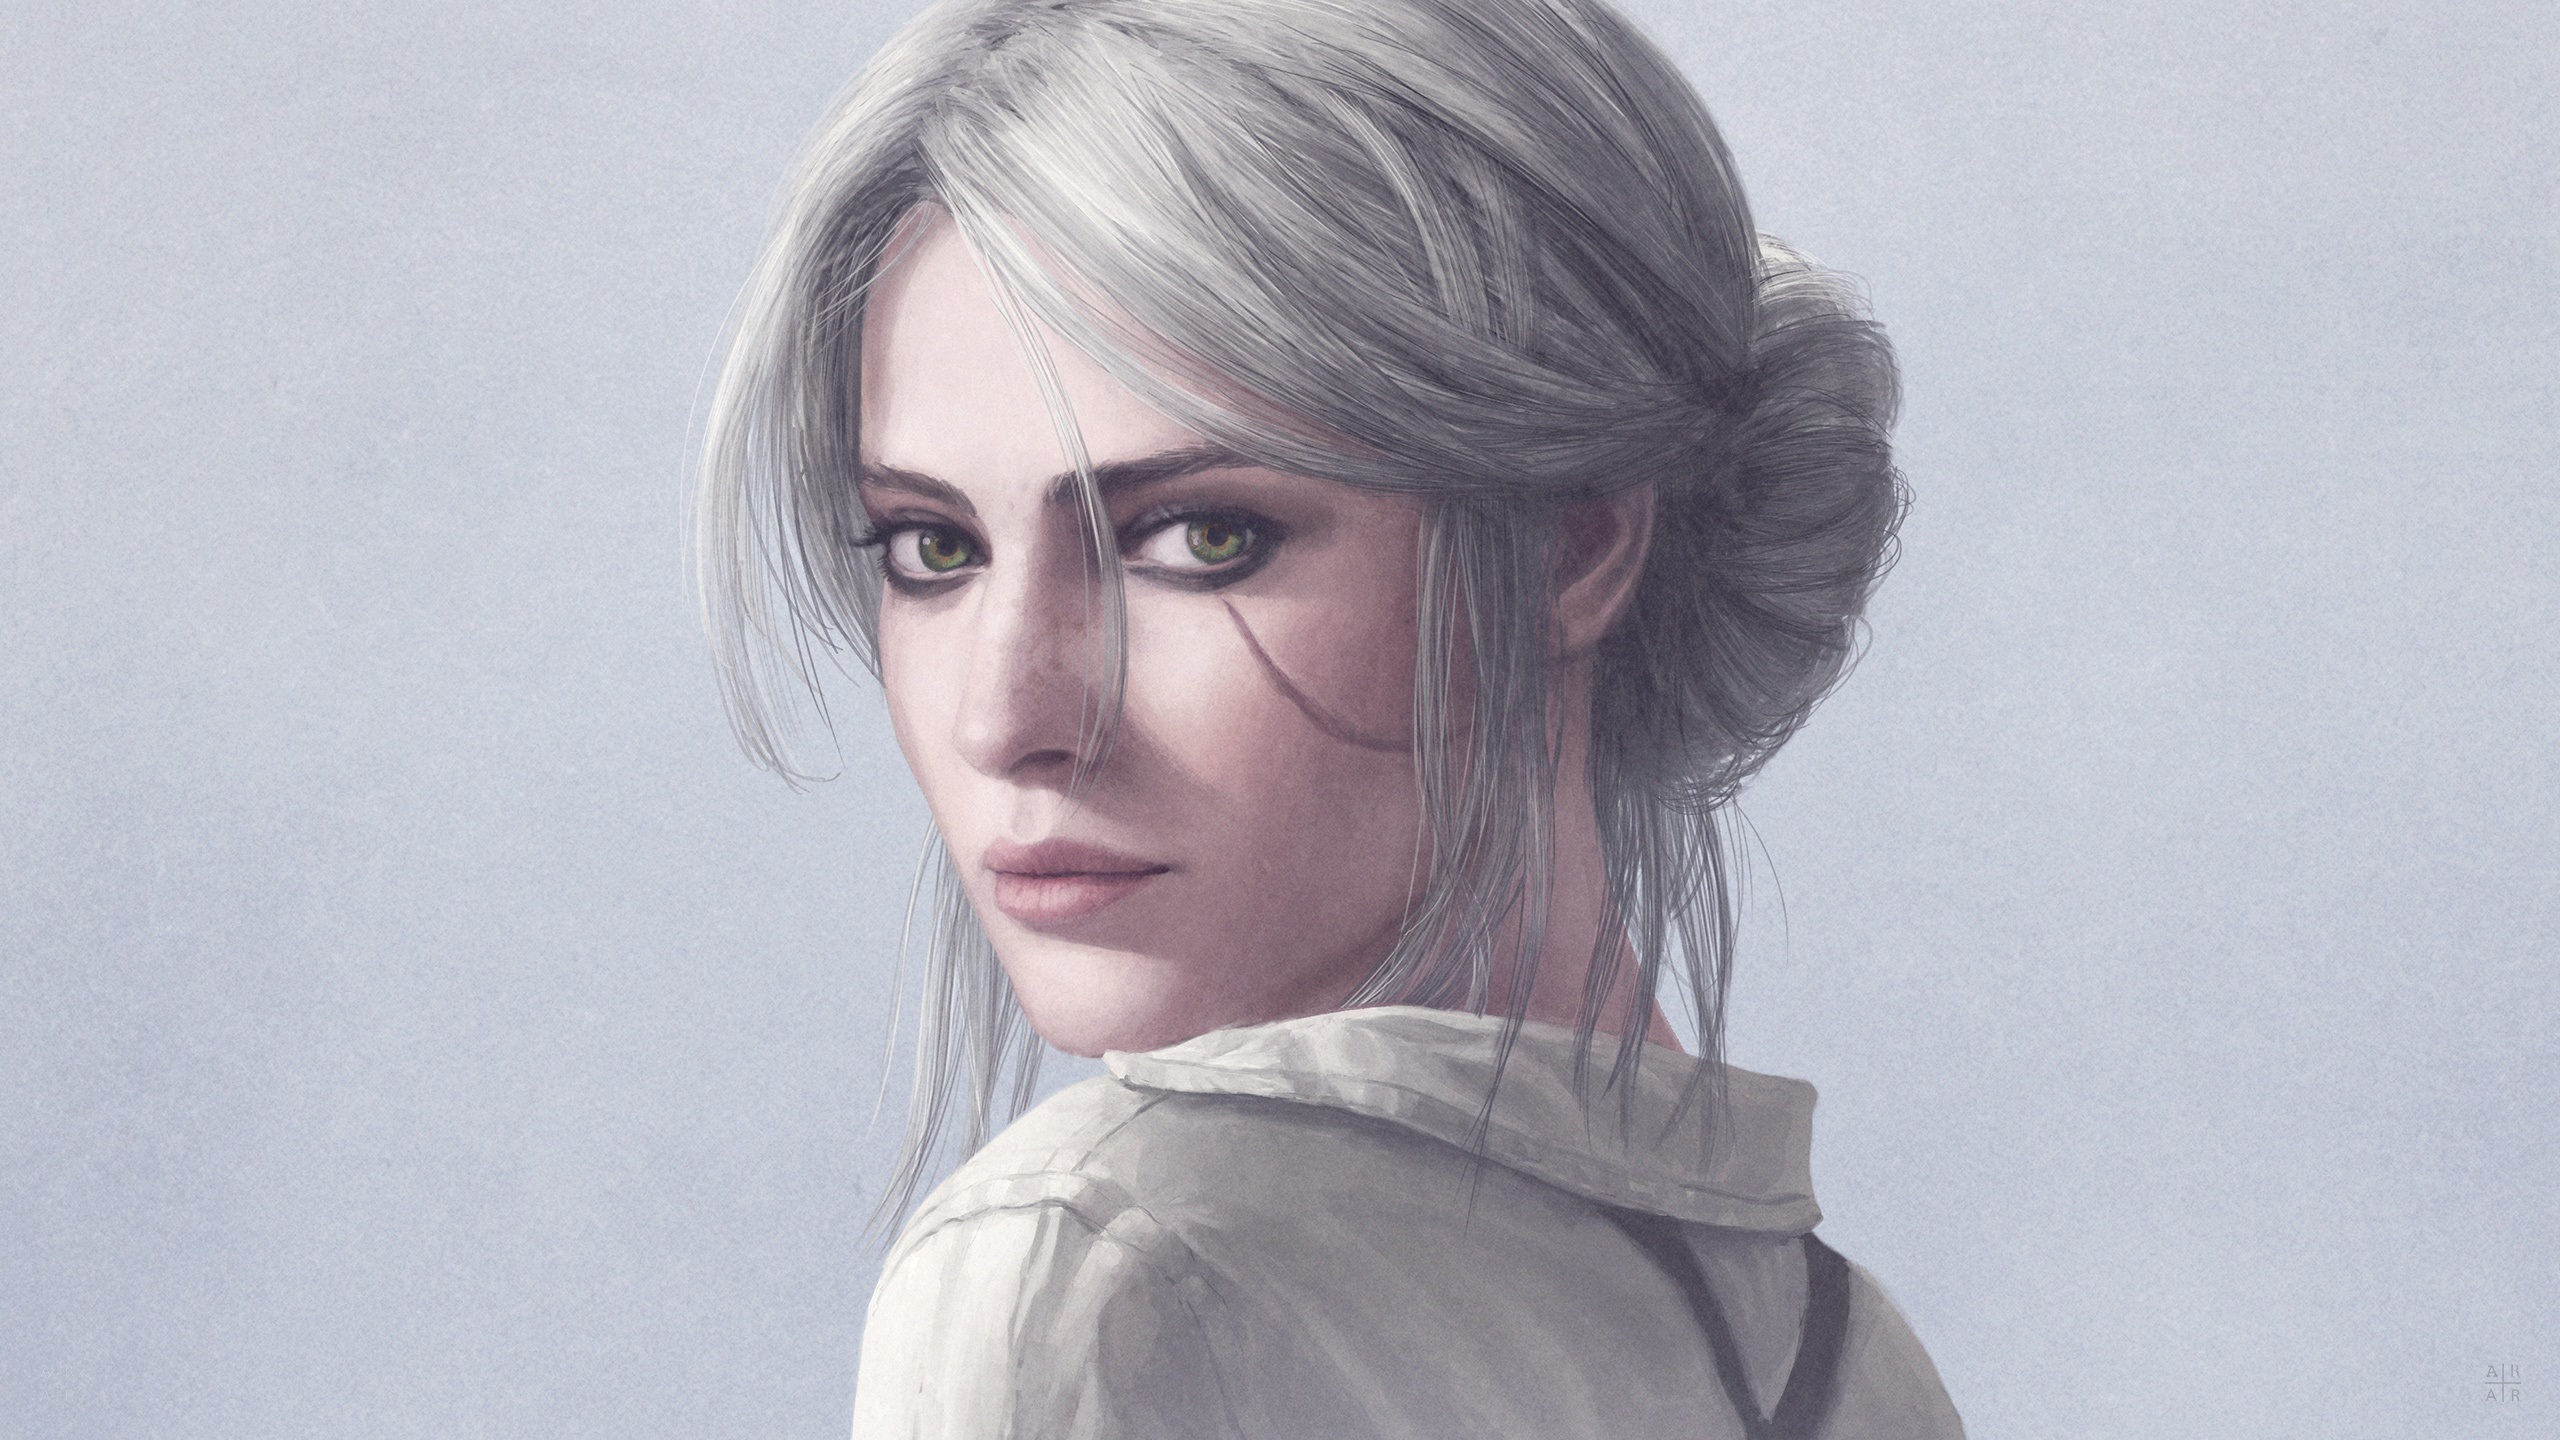 Wallpaper The Witcher 3 Wild Hunt White Hair Girl Look Back